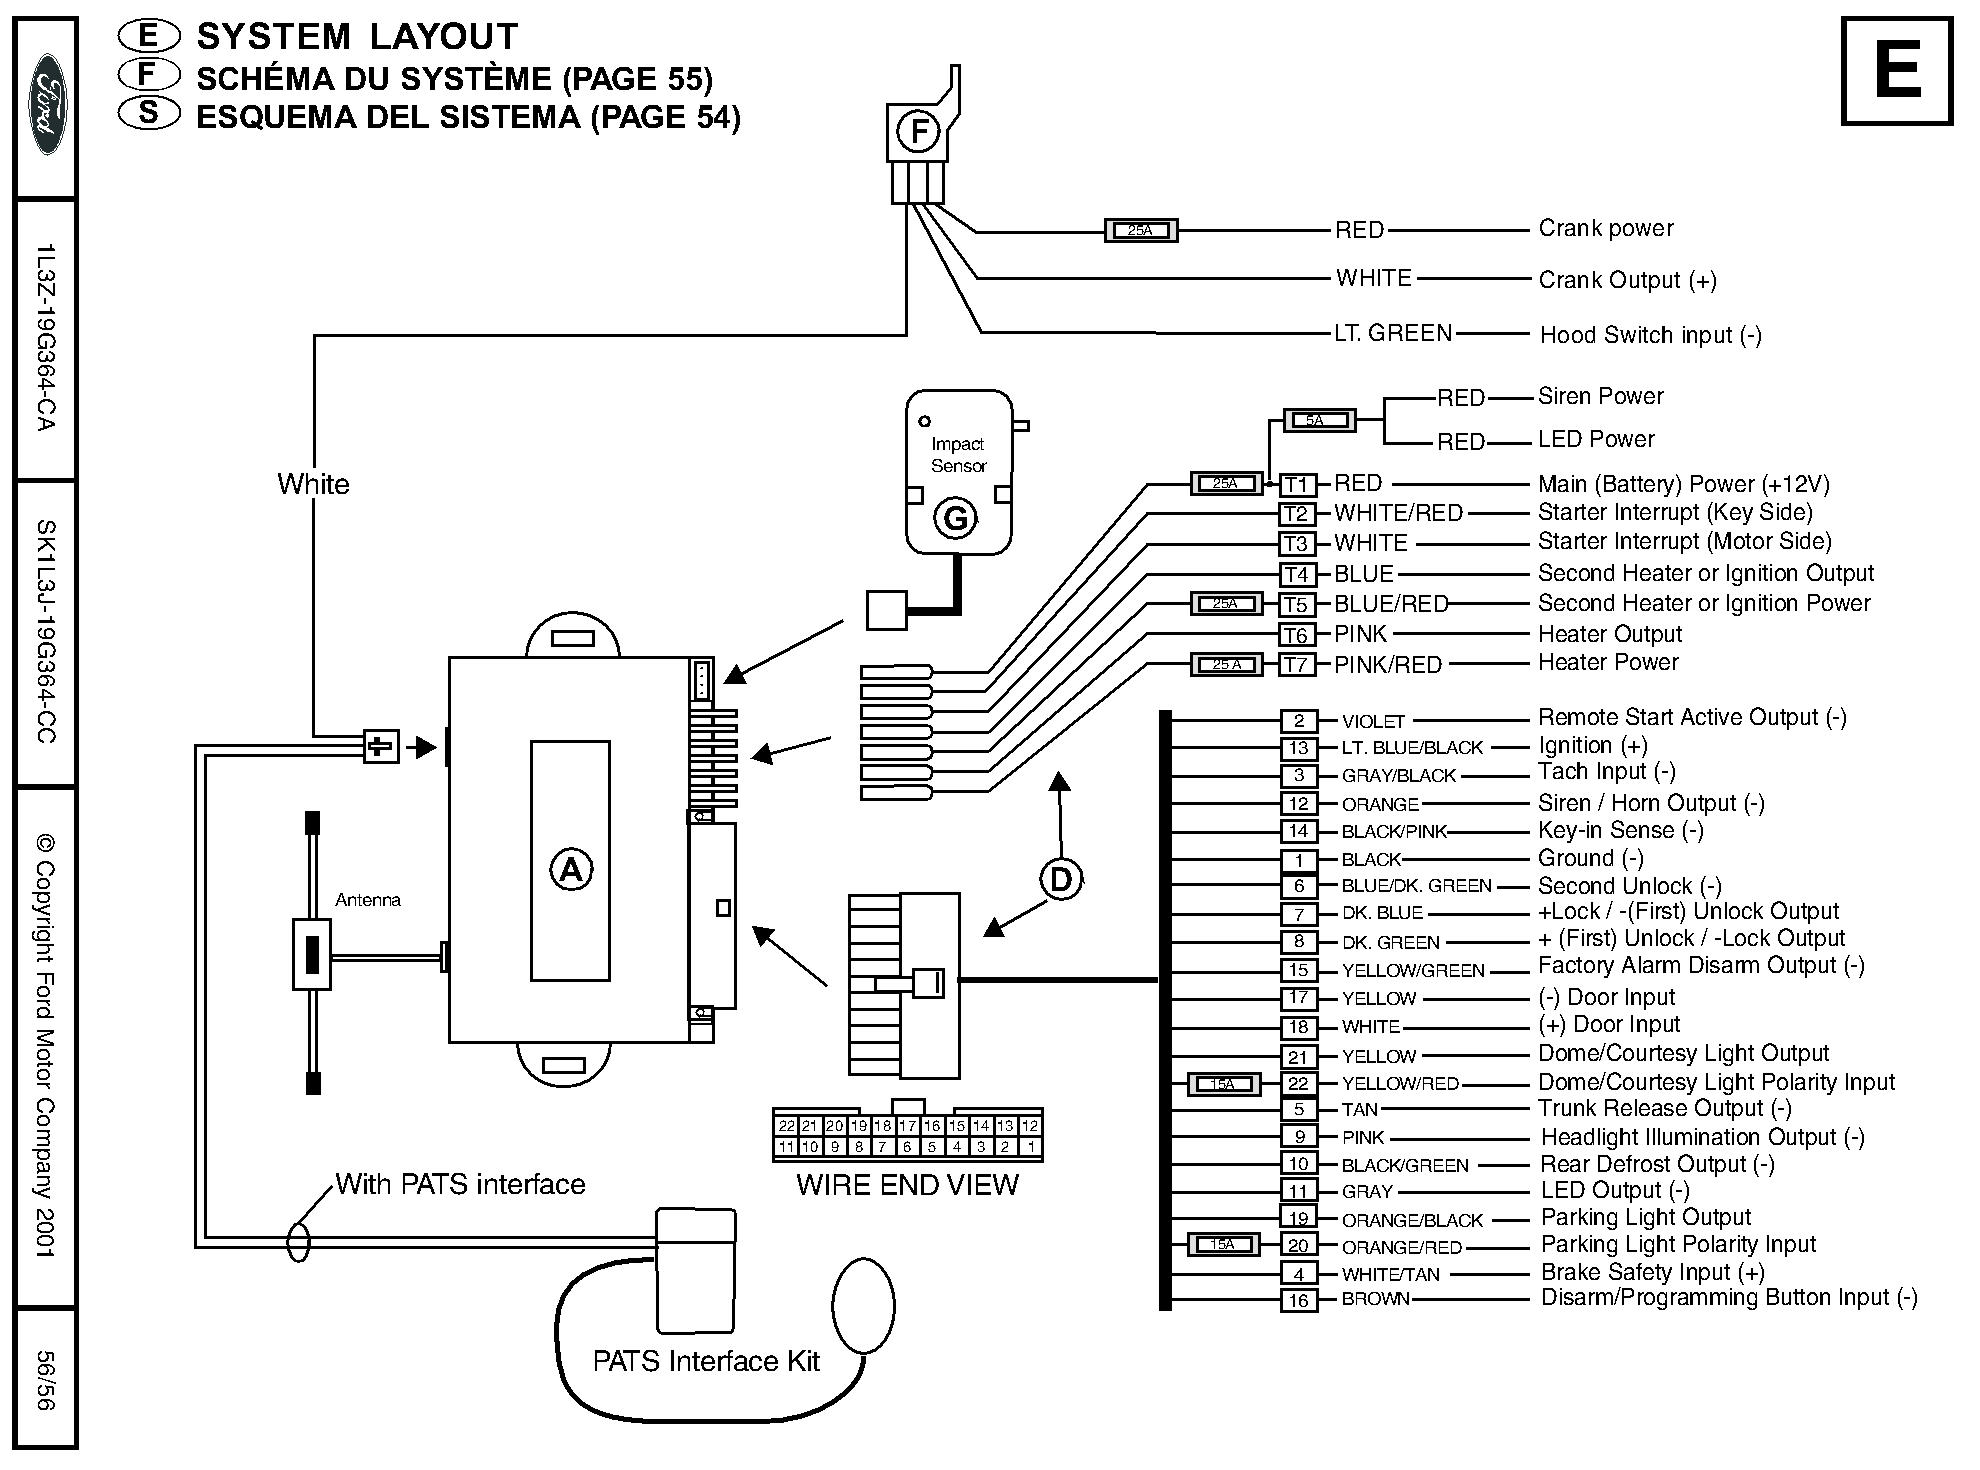 Attractive Powercode Wiring 2002 Escape Composition - Electrical ...